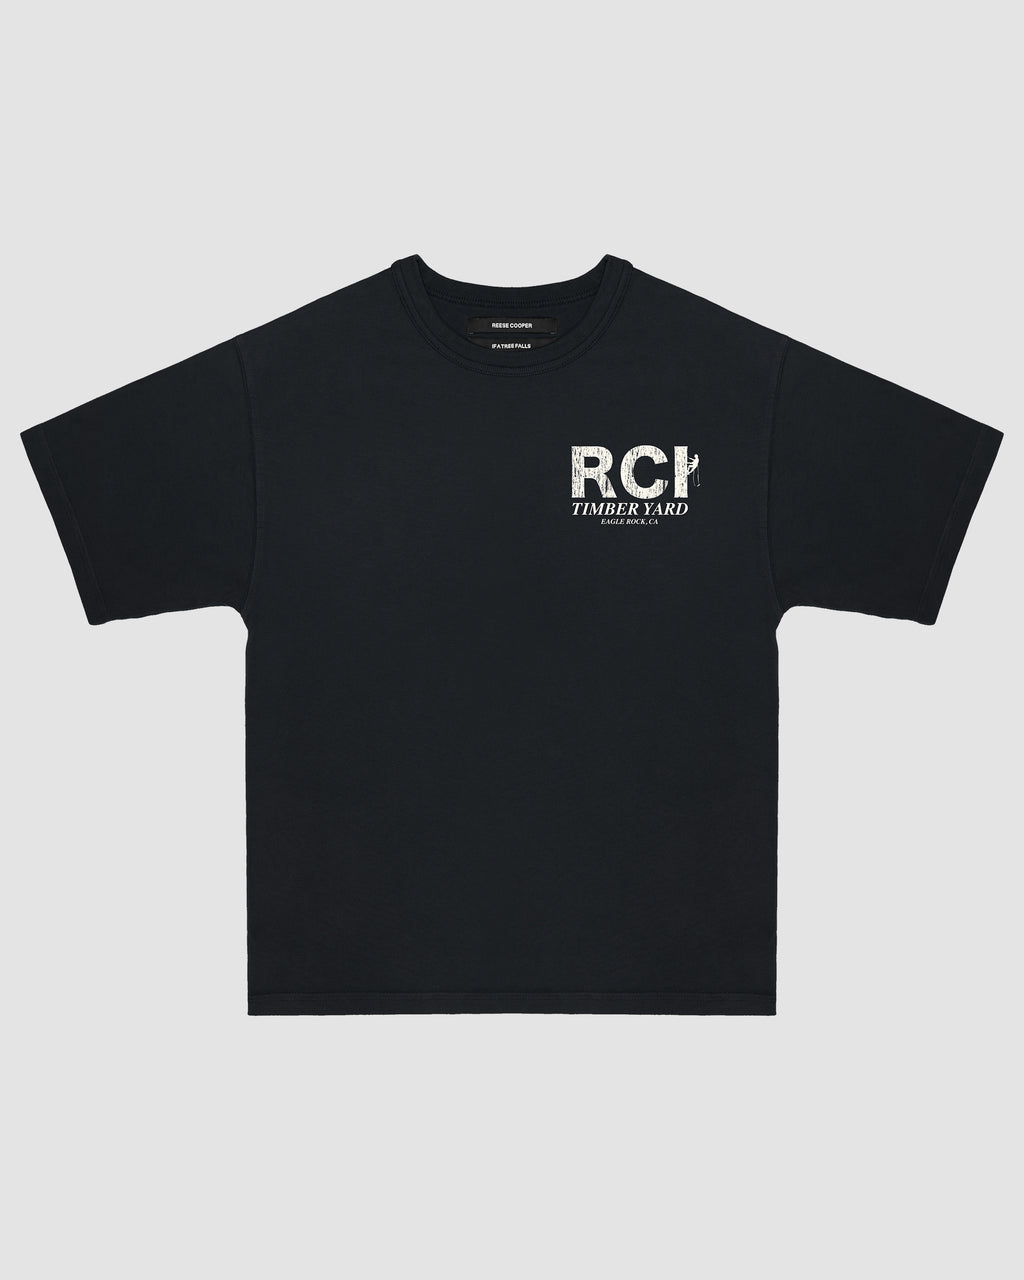 RCI Timberyard Tee Shirt in Black